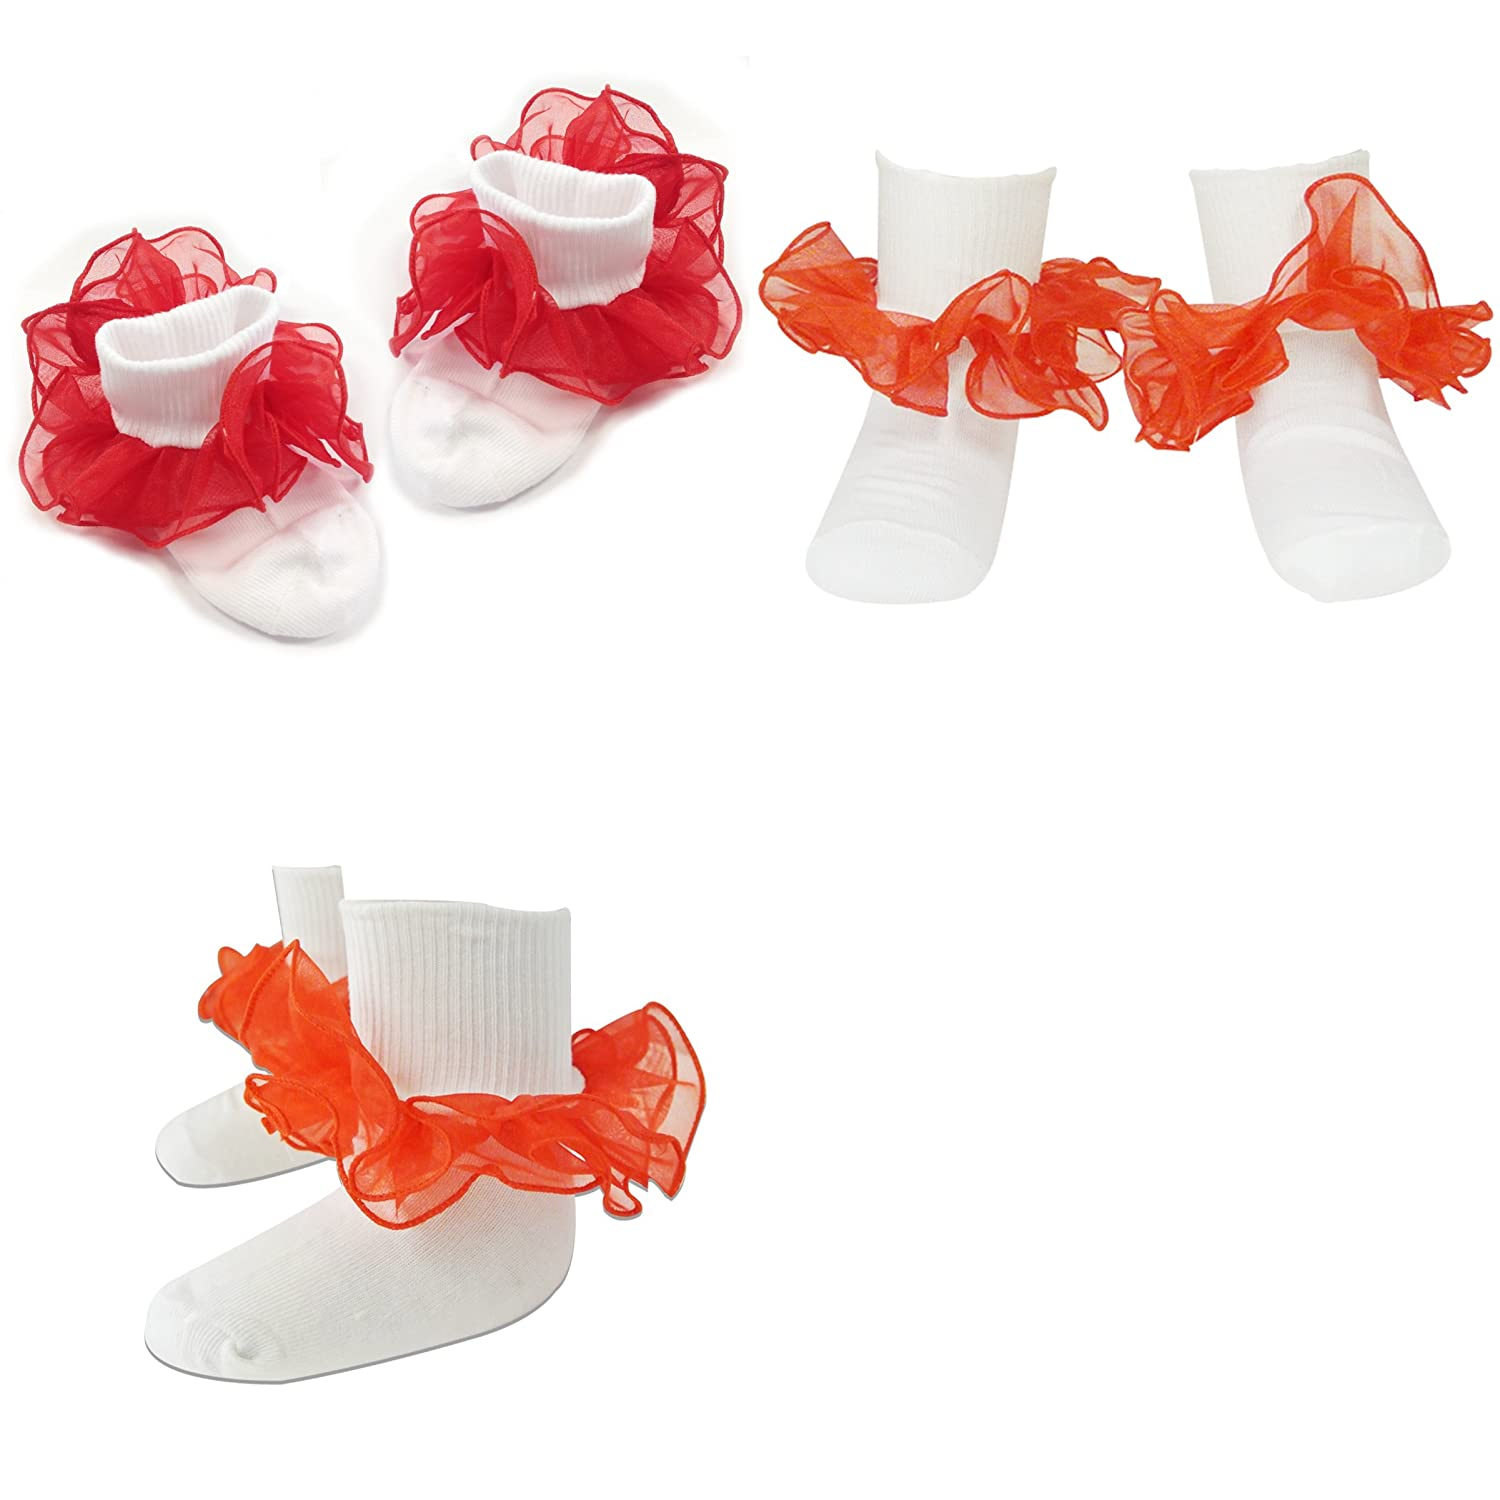 White Blue Size 4-6 Wrapables Lil Miss Mia Organza Ruffle Socks for Toddler Girl Orange - Red Set of 4